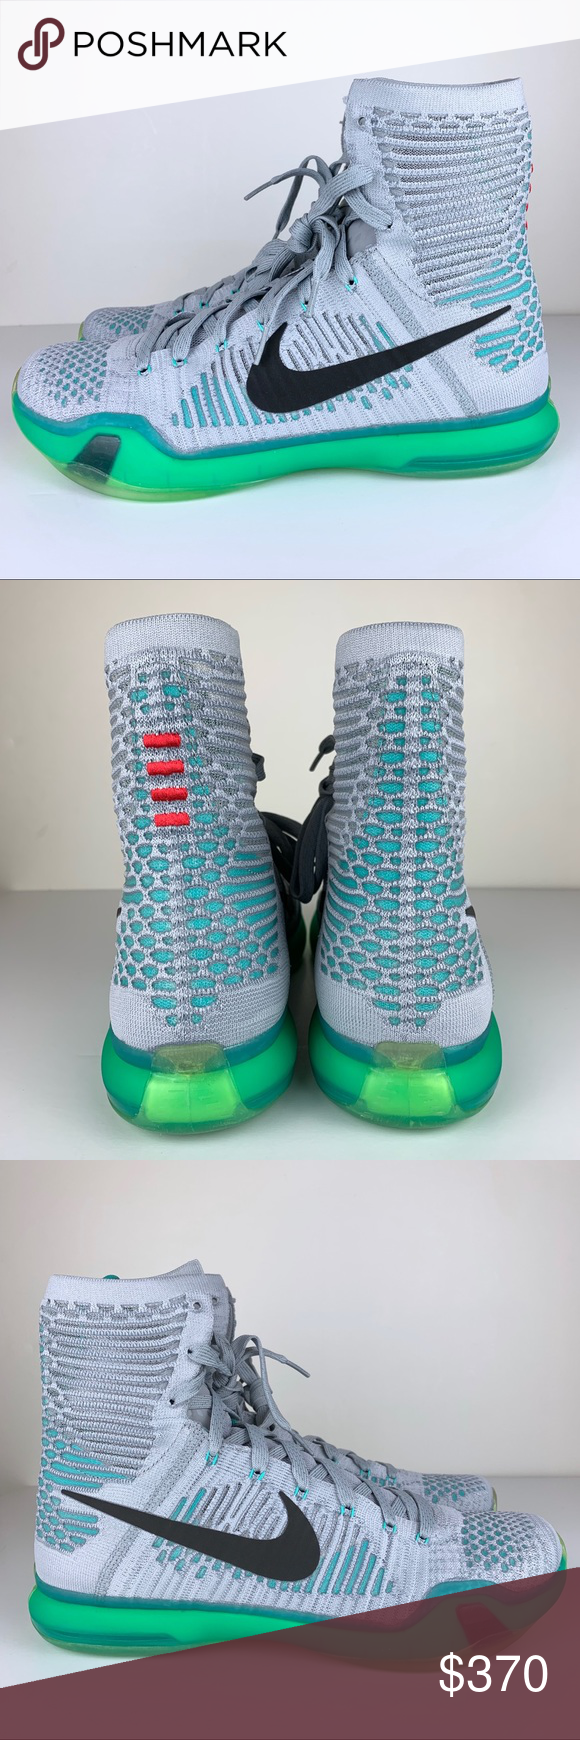 wholesale dealer 45e9d 1a9e5 Nike Kobe X 10 Elite Elevate Grey green Flyknit NIKE KOBE X 10 ELITE